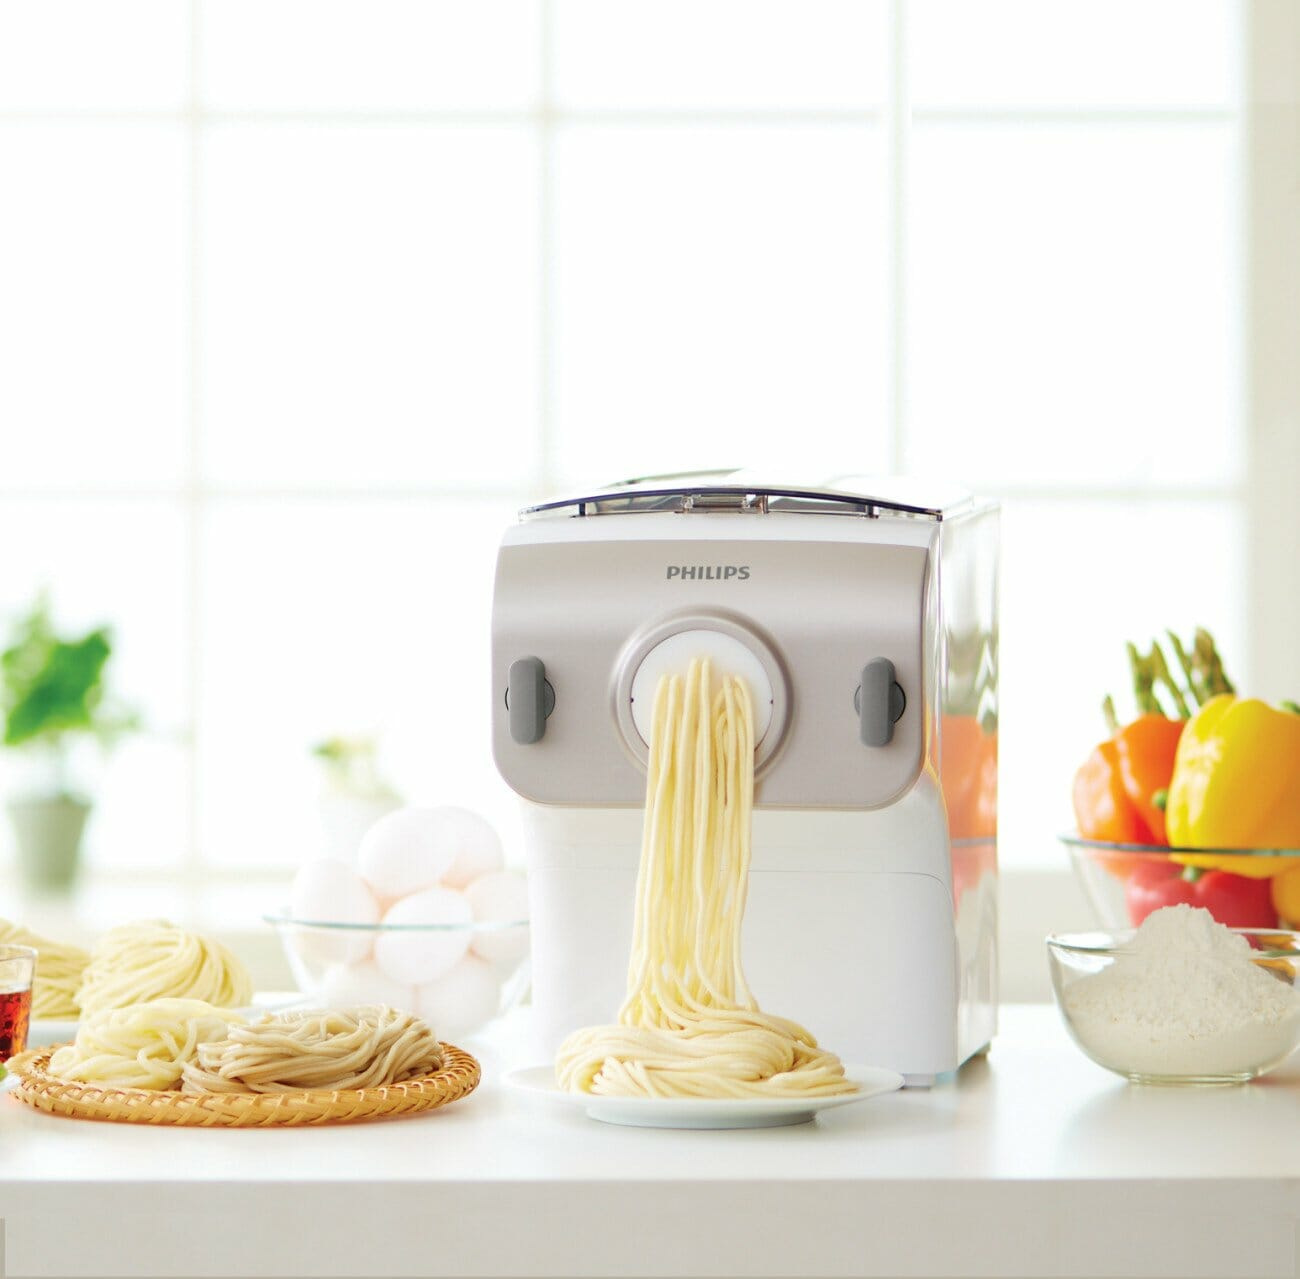 Philip Pasta Maker Machine for home use